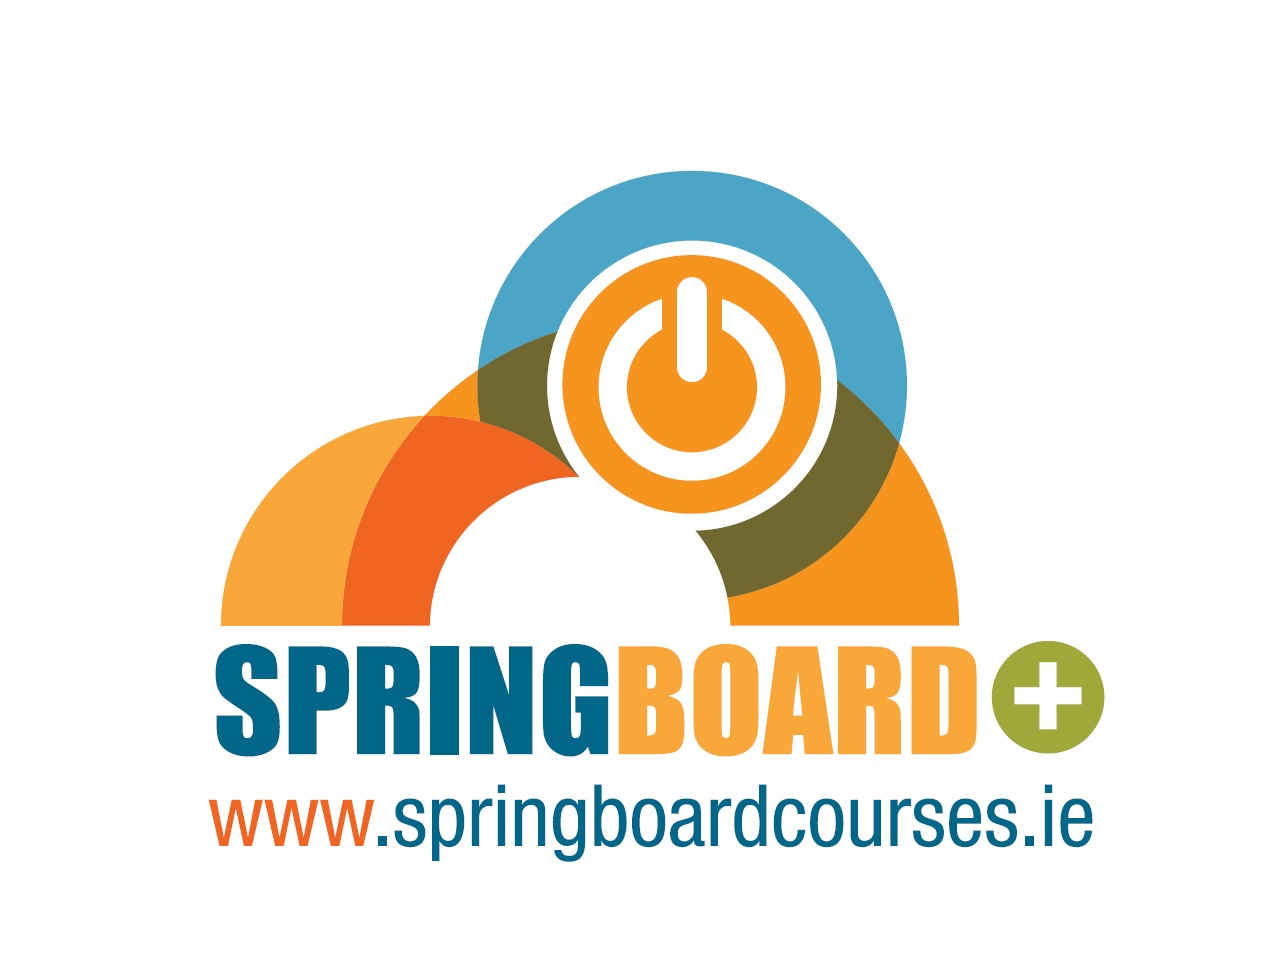 https://lit.ie/admin/LIT/media/LIT/Flexible%20Learning/Logos/Springboard-Logo.png